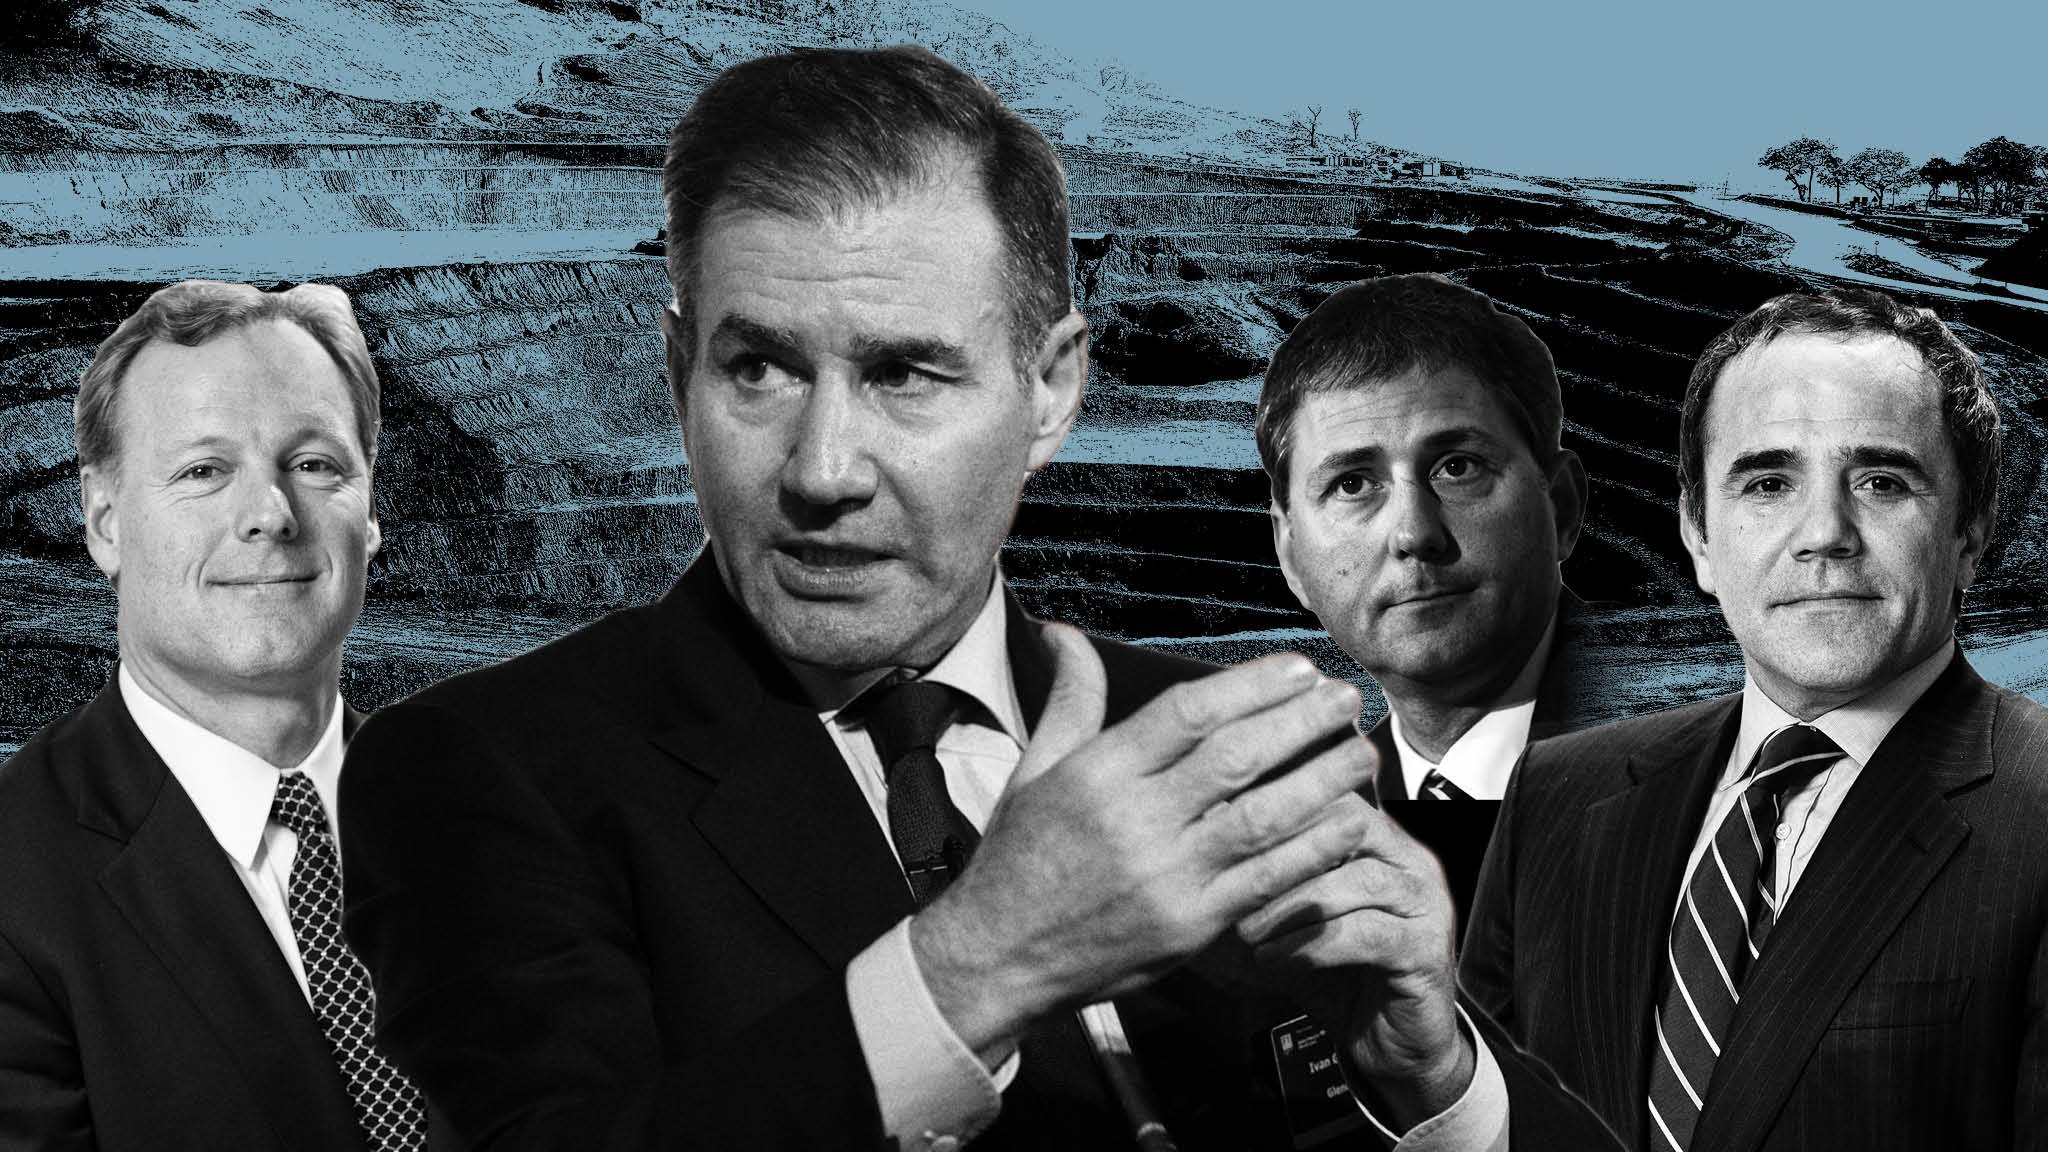 Glencore begins the changing of the old guard